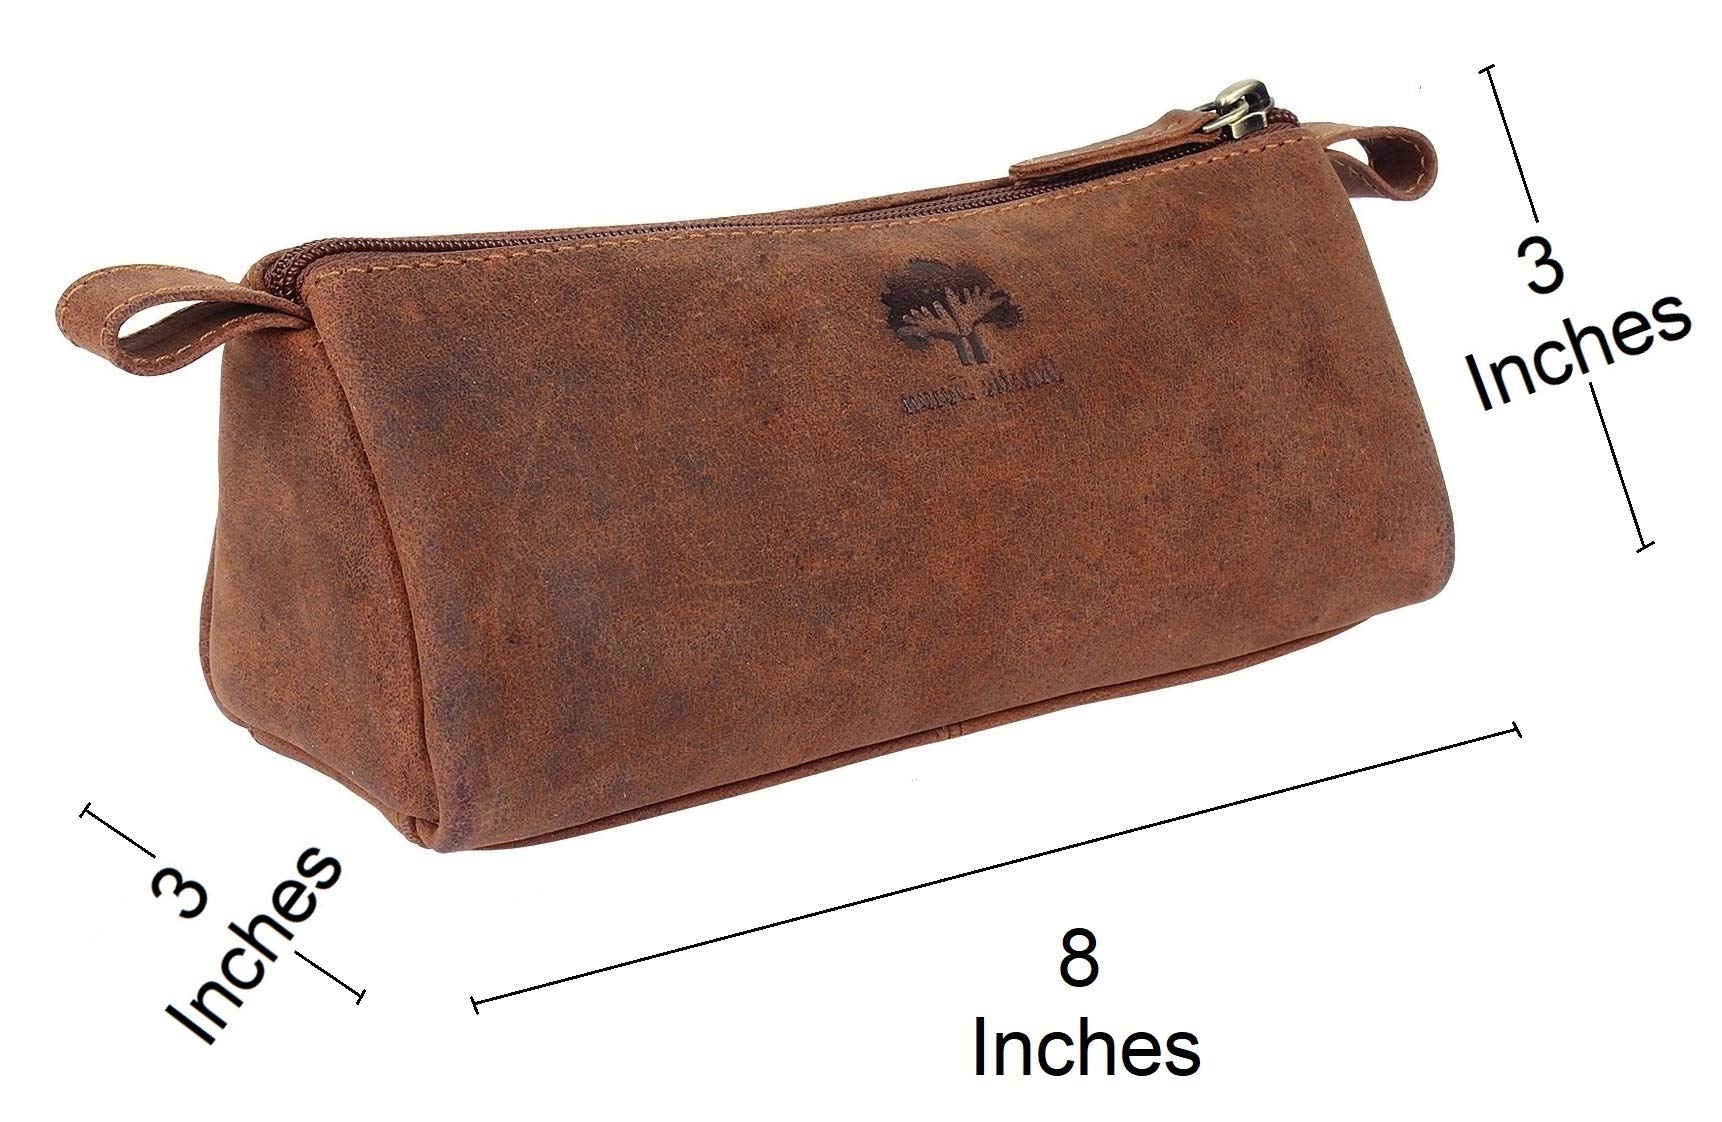 Leather Pencil Case - Zippered Pen Pouch for School, Work & Office by Rustic Town by RusticTown (Image #2)